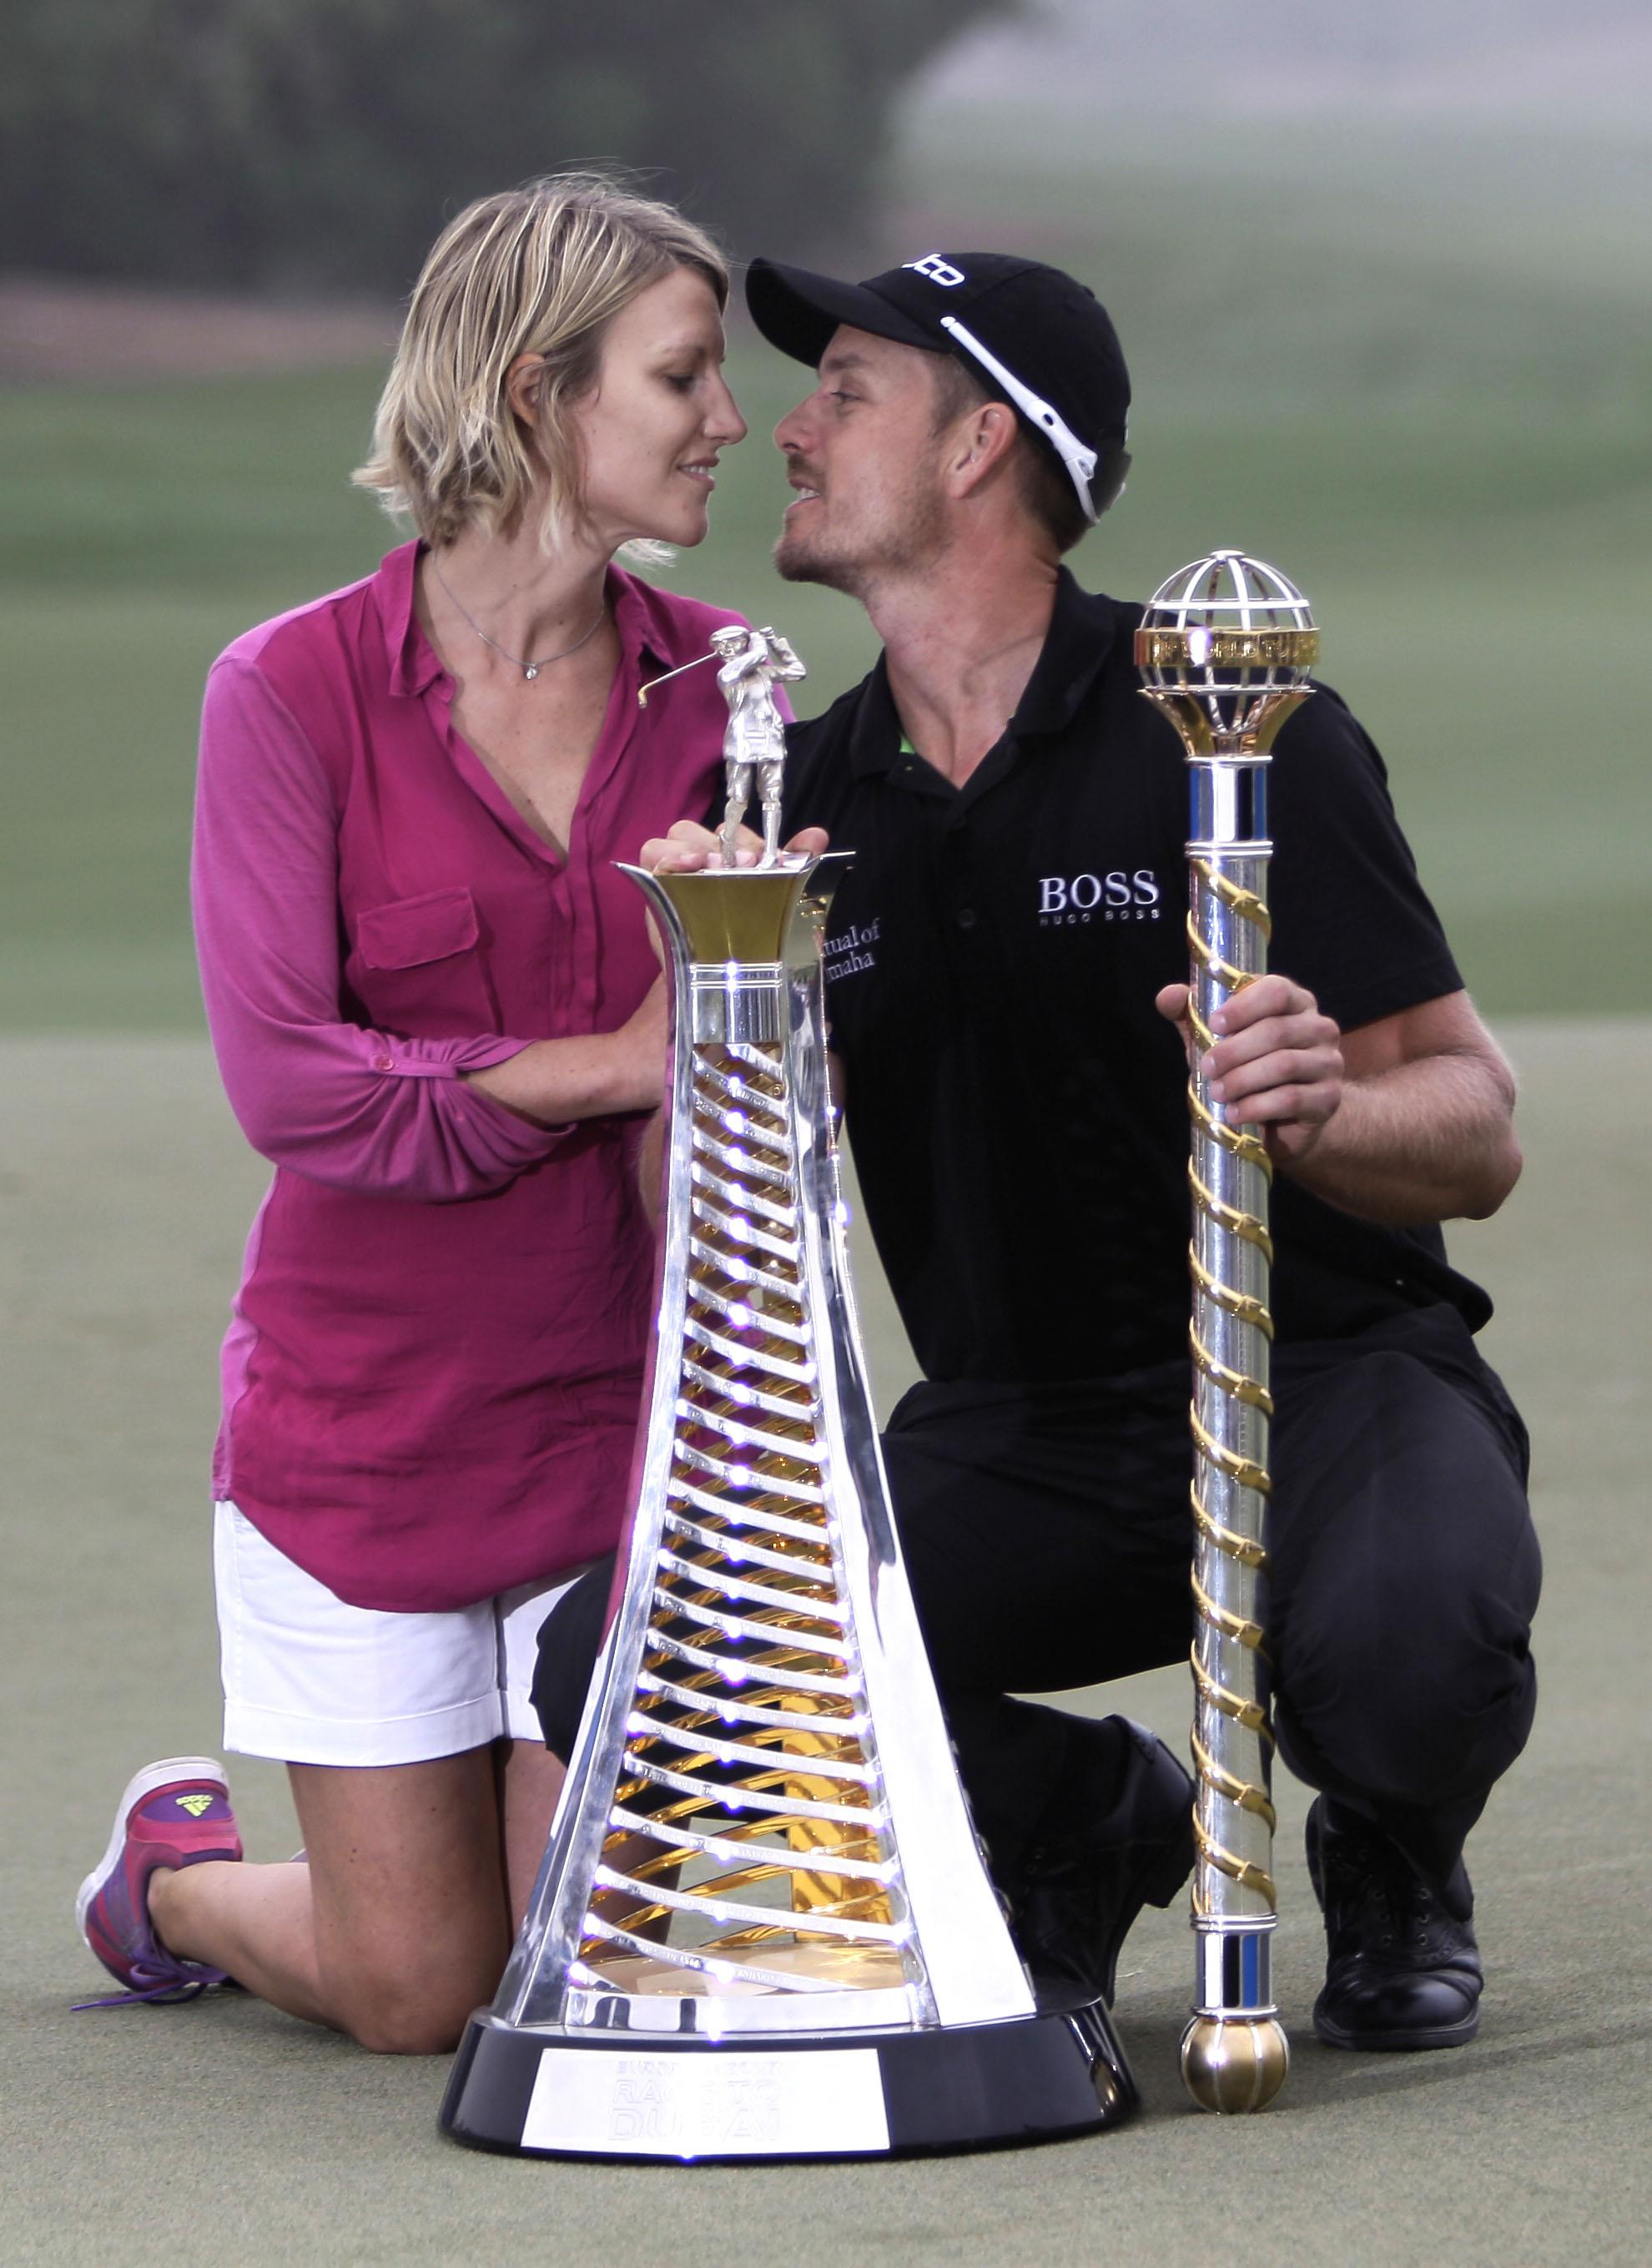 The Swedish pair met through their mutual love for golf